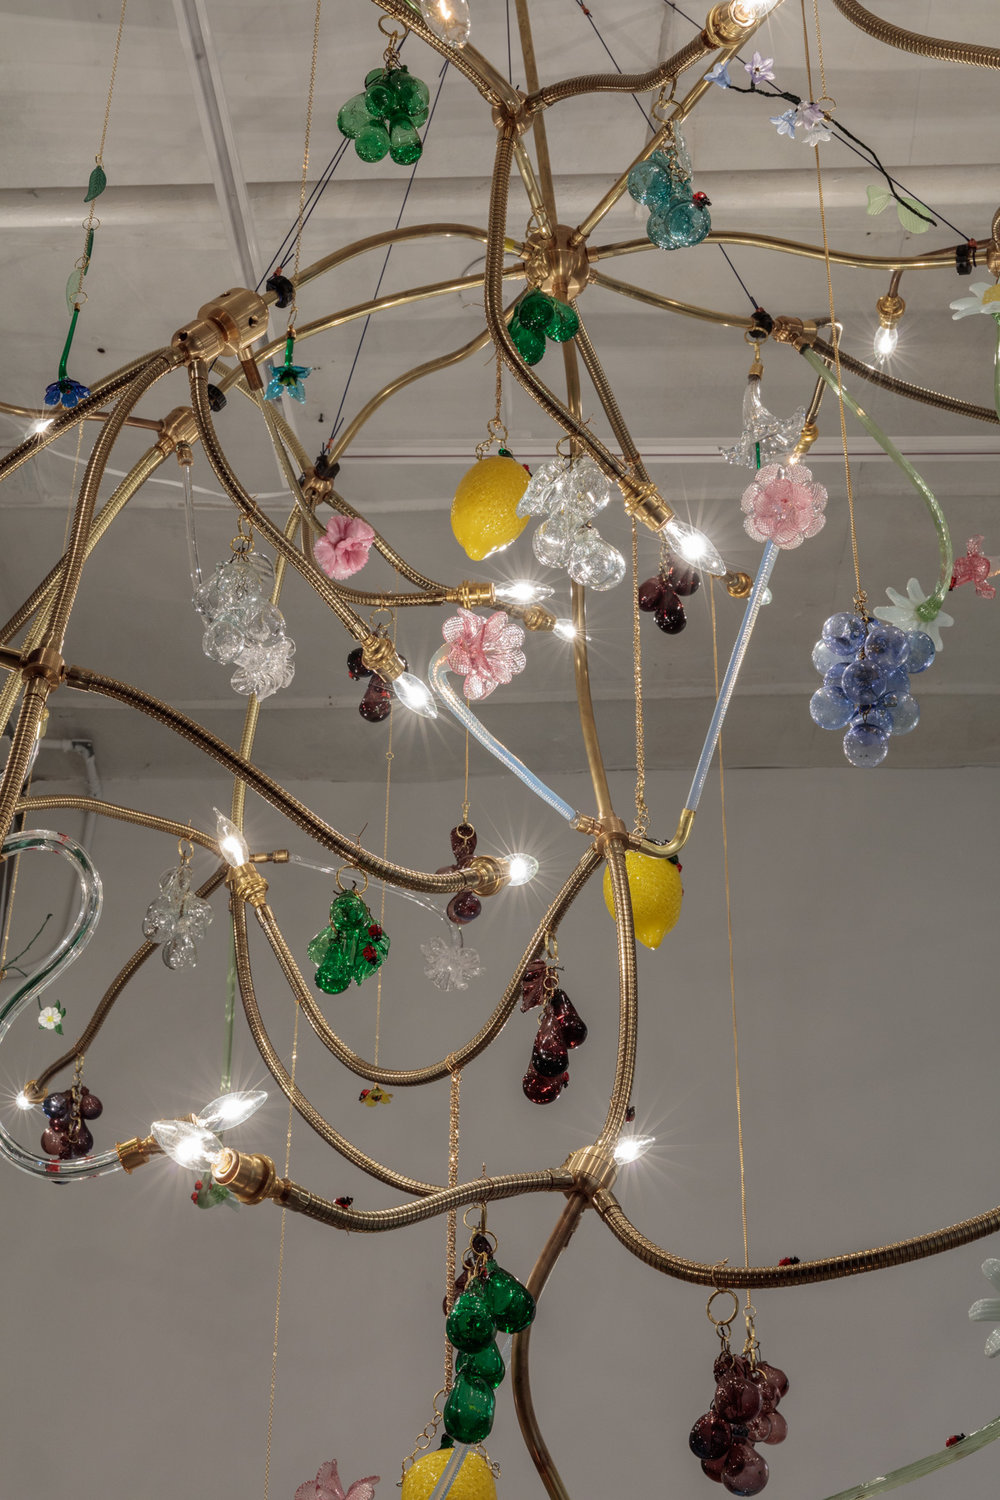 detail  Gardening   glass, bulbs, brass, wiring  112 inches x 84 inches x 84 inches approx  2017